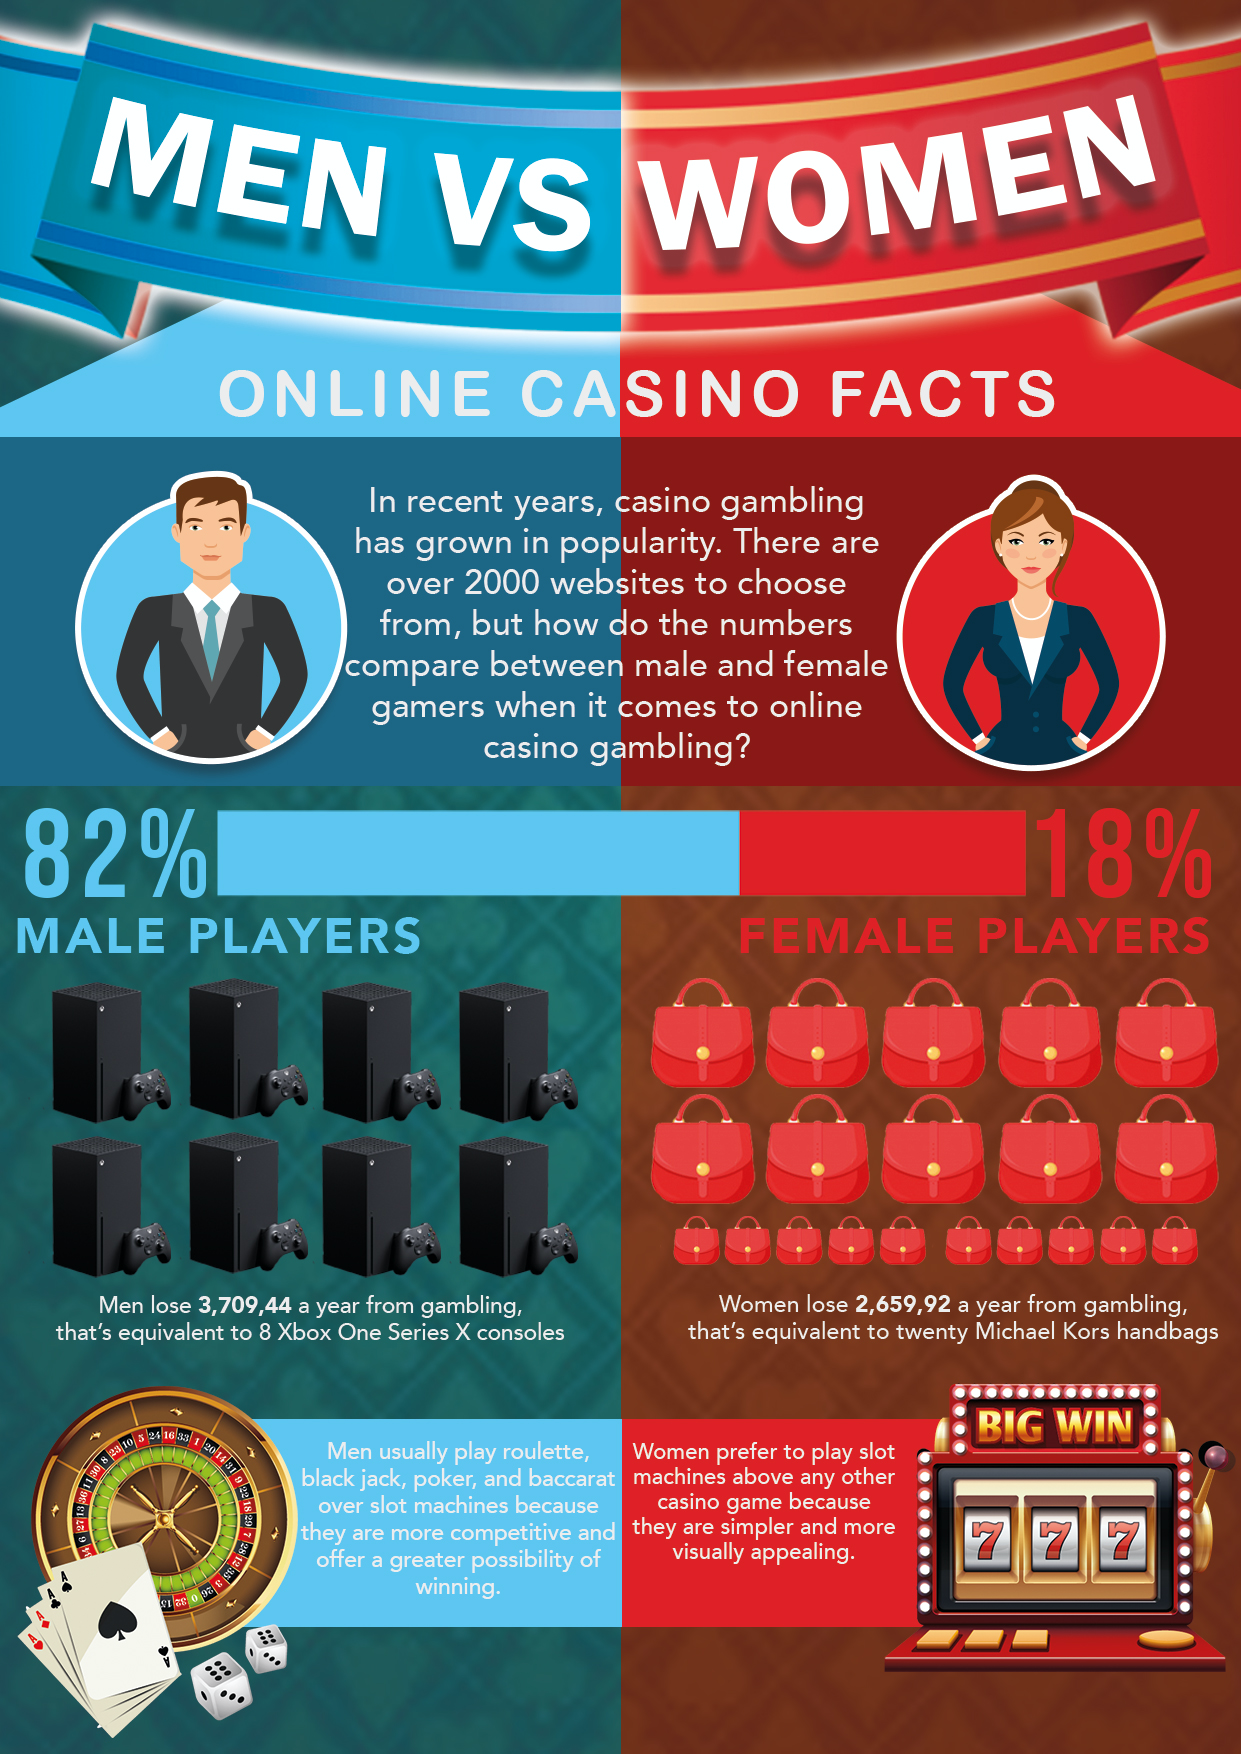 Roulette remains one of the most popular forms of gaming